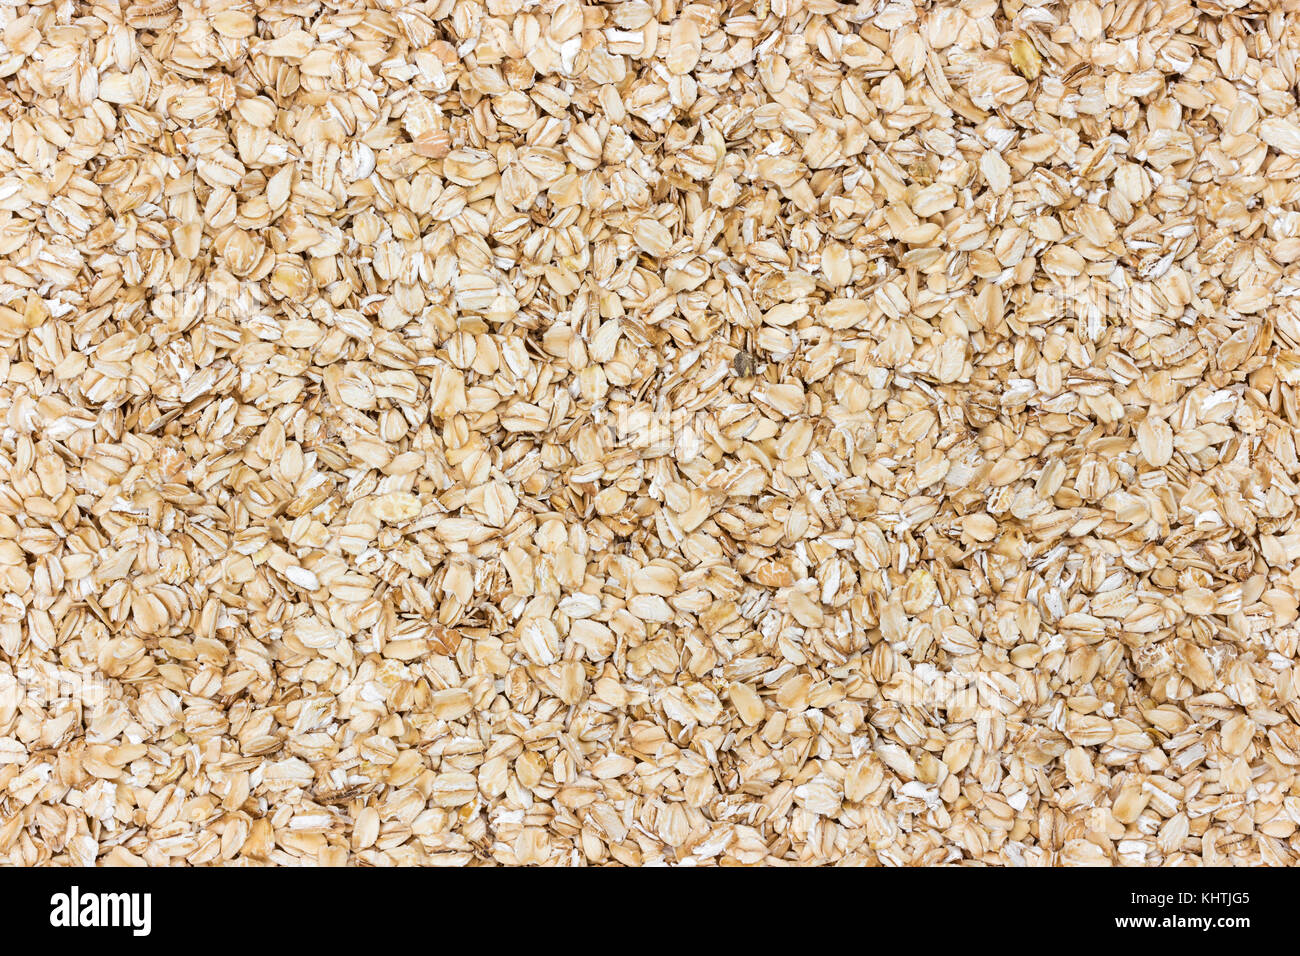 Oatmeal background. Oat flakes texture - Stock Image